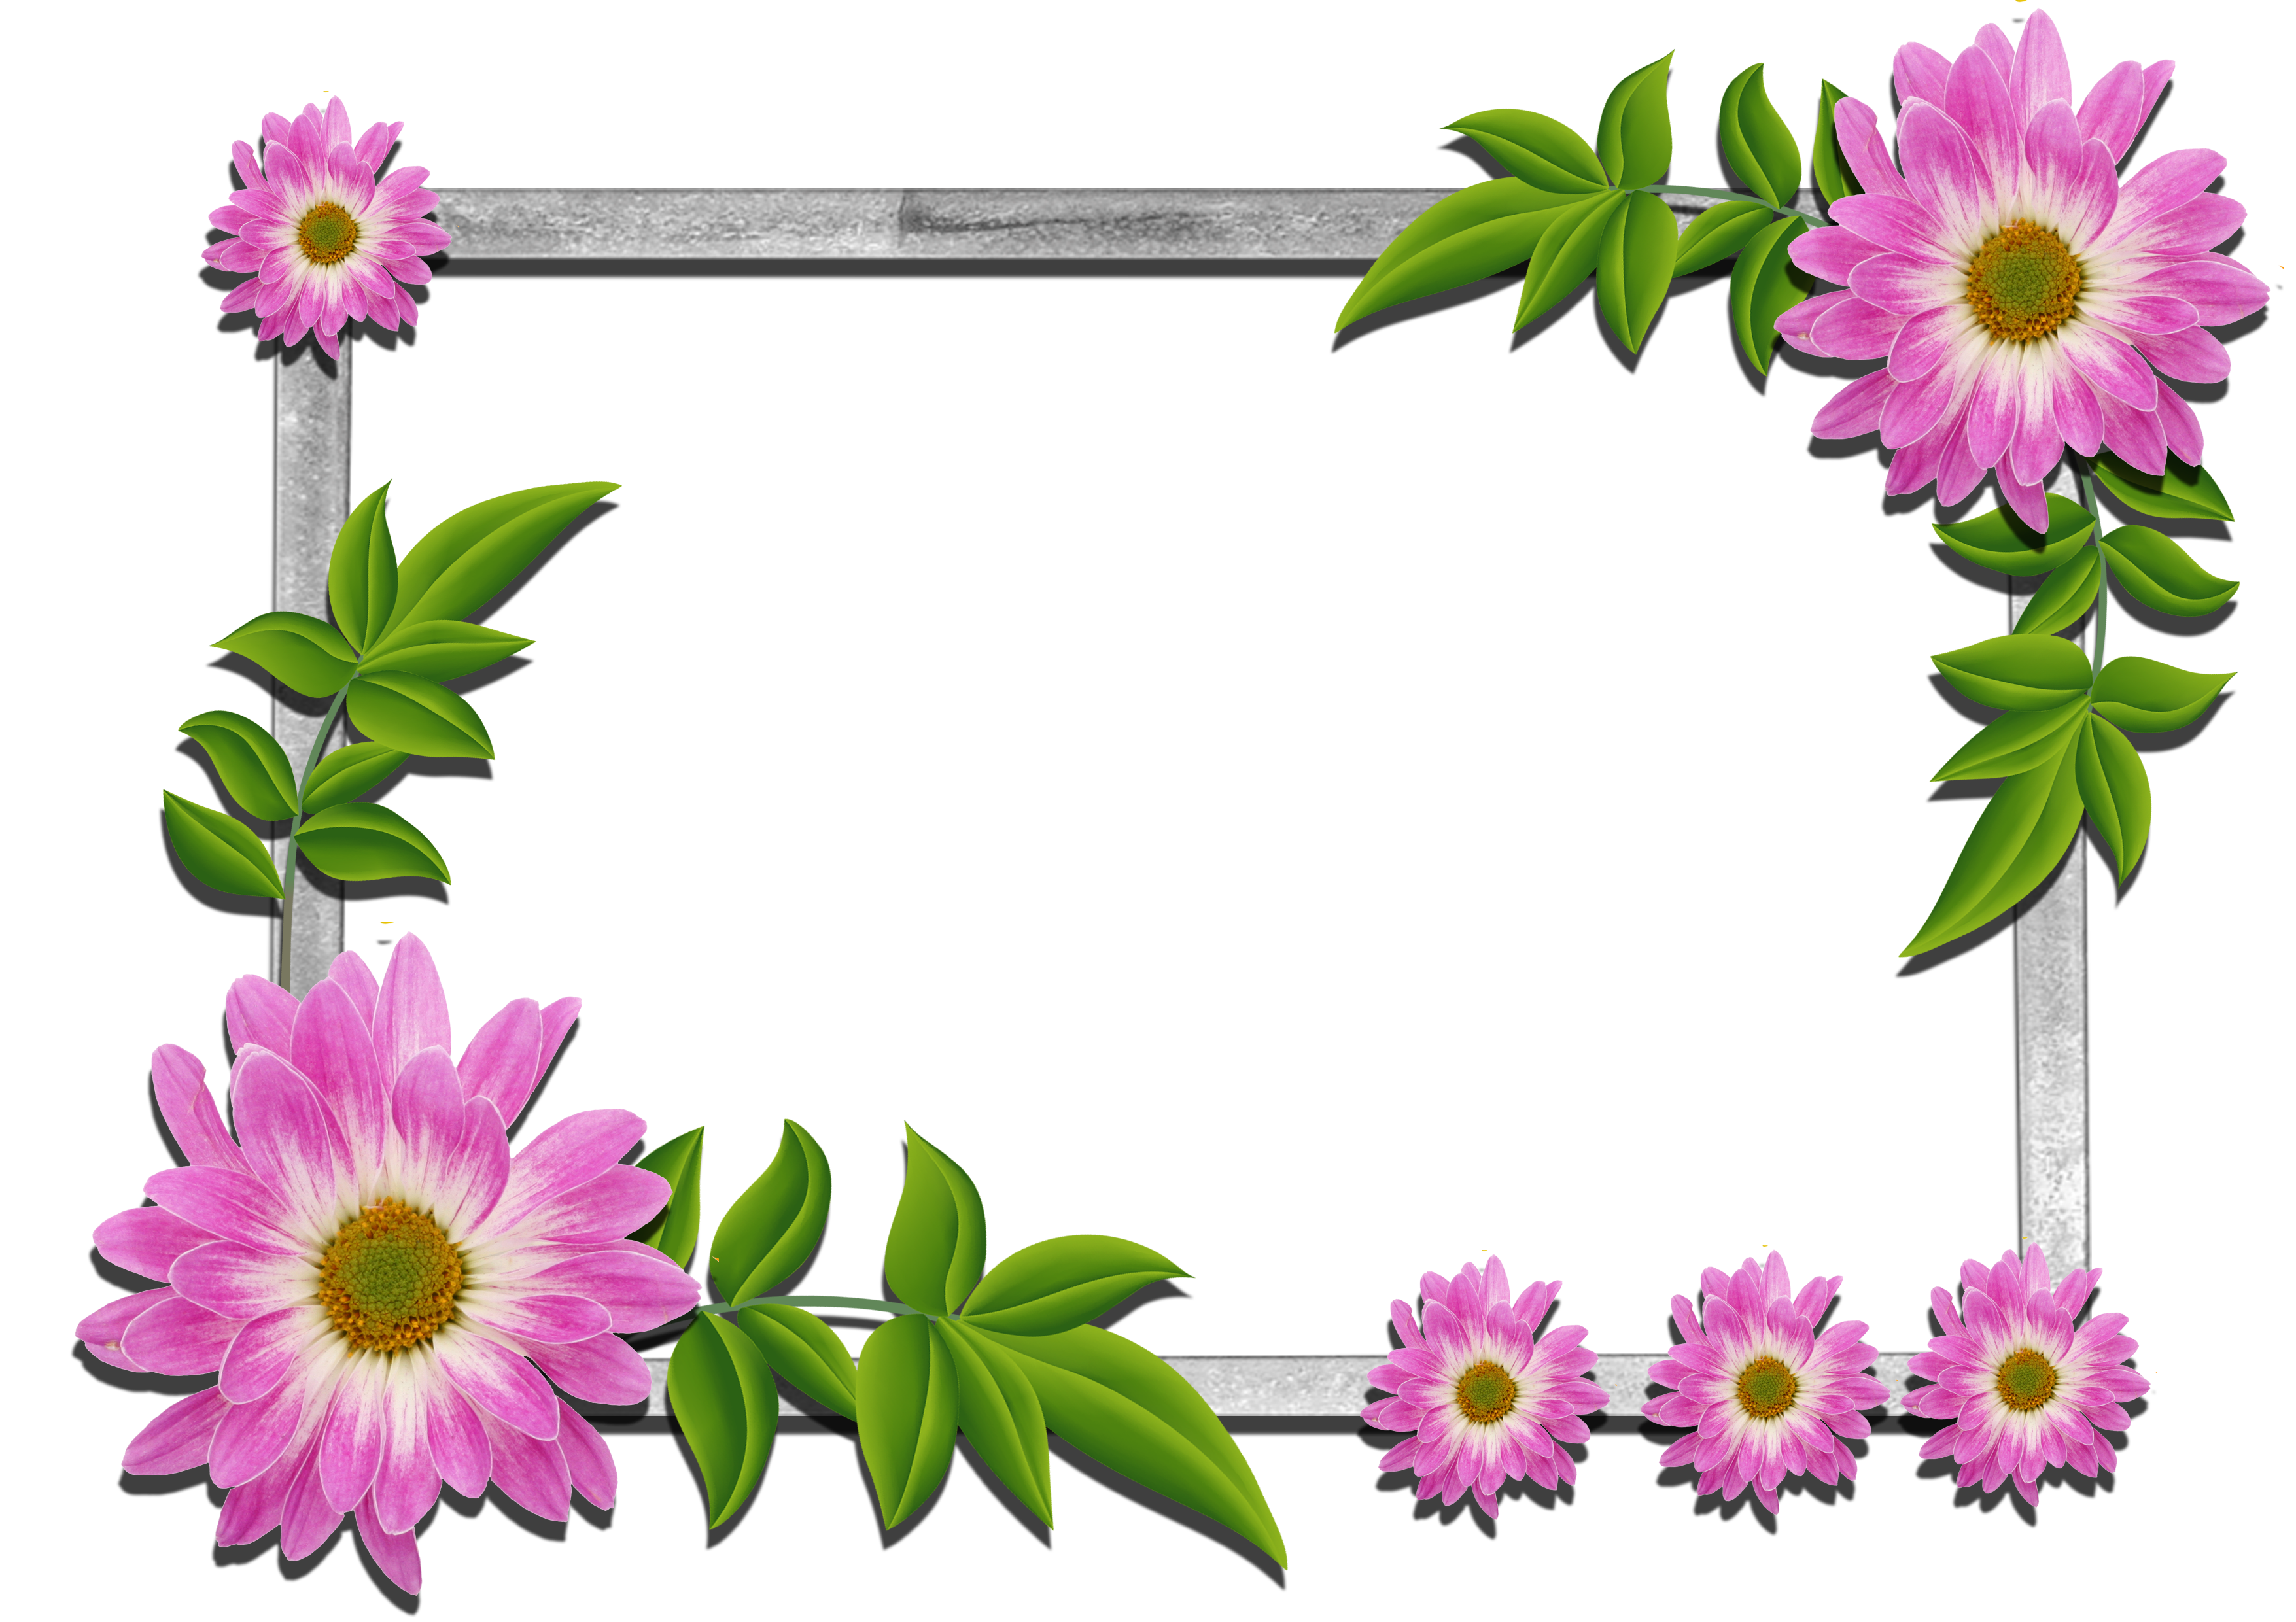 Flower frames clipart image library Flowers frame (5) | Gallery Yopriceville - High-Quality Images and ... image library